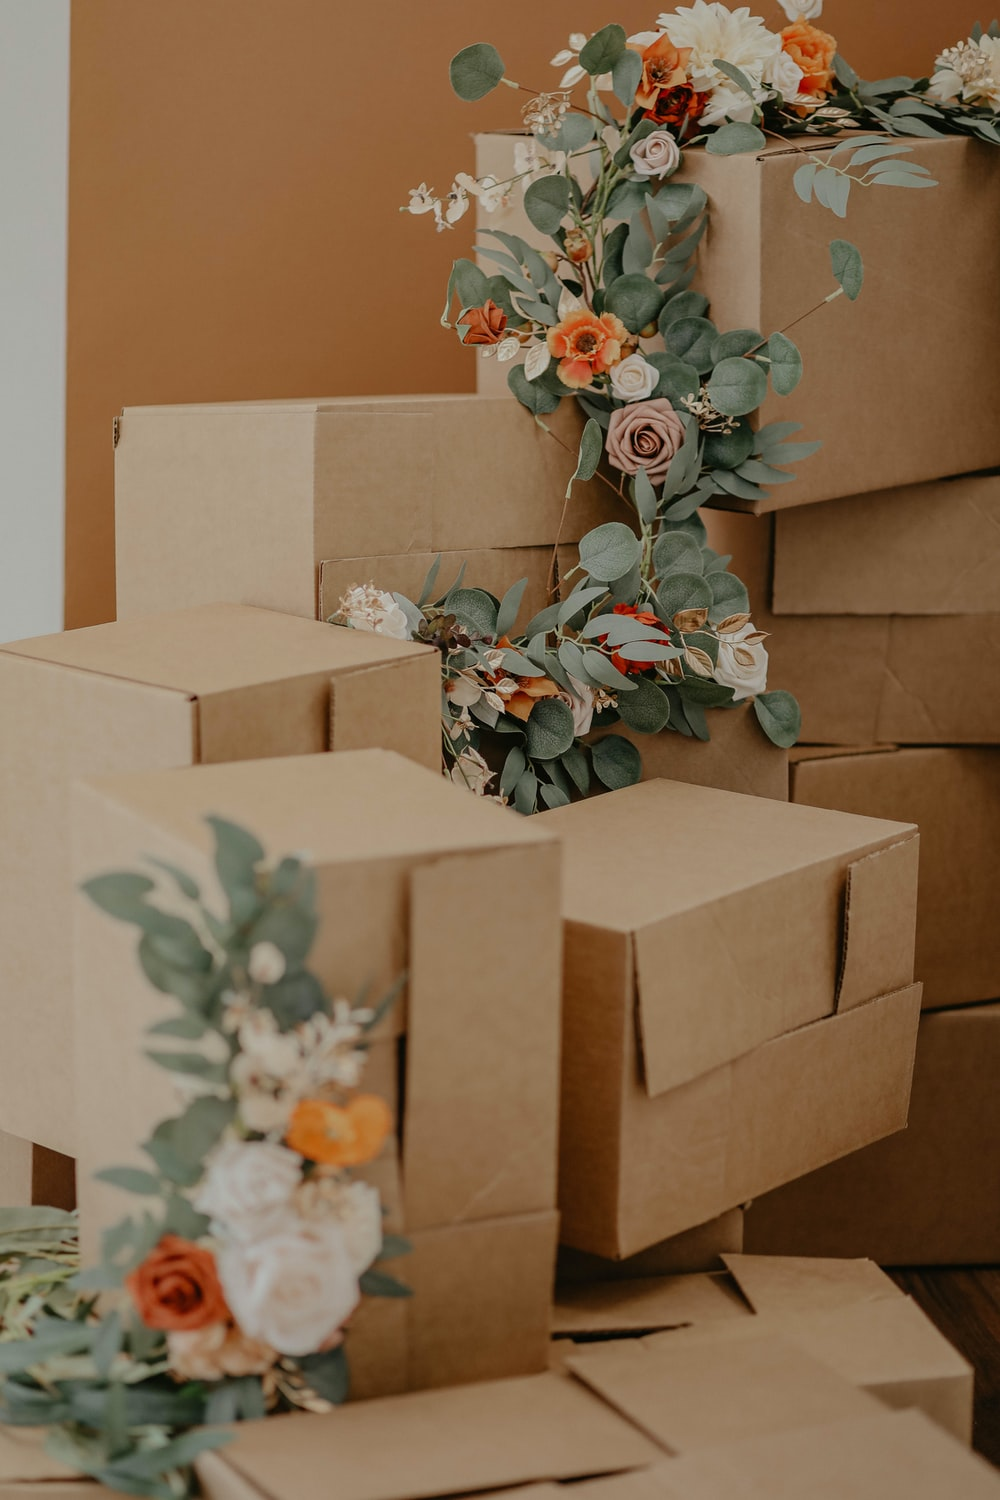 brown cardboard box with green and red flowers